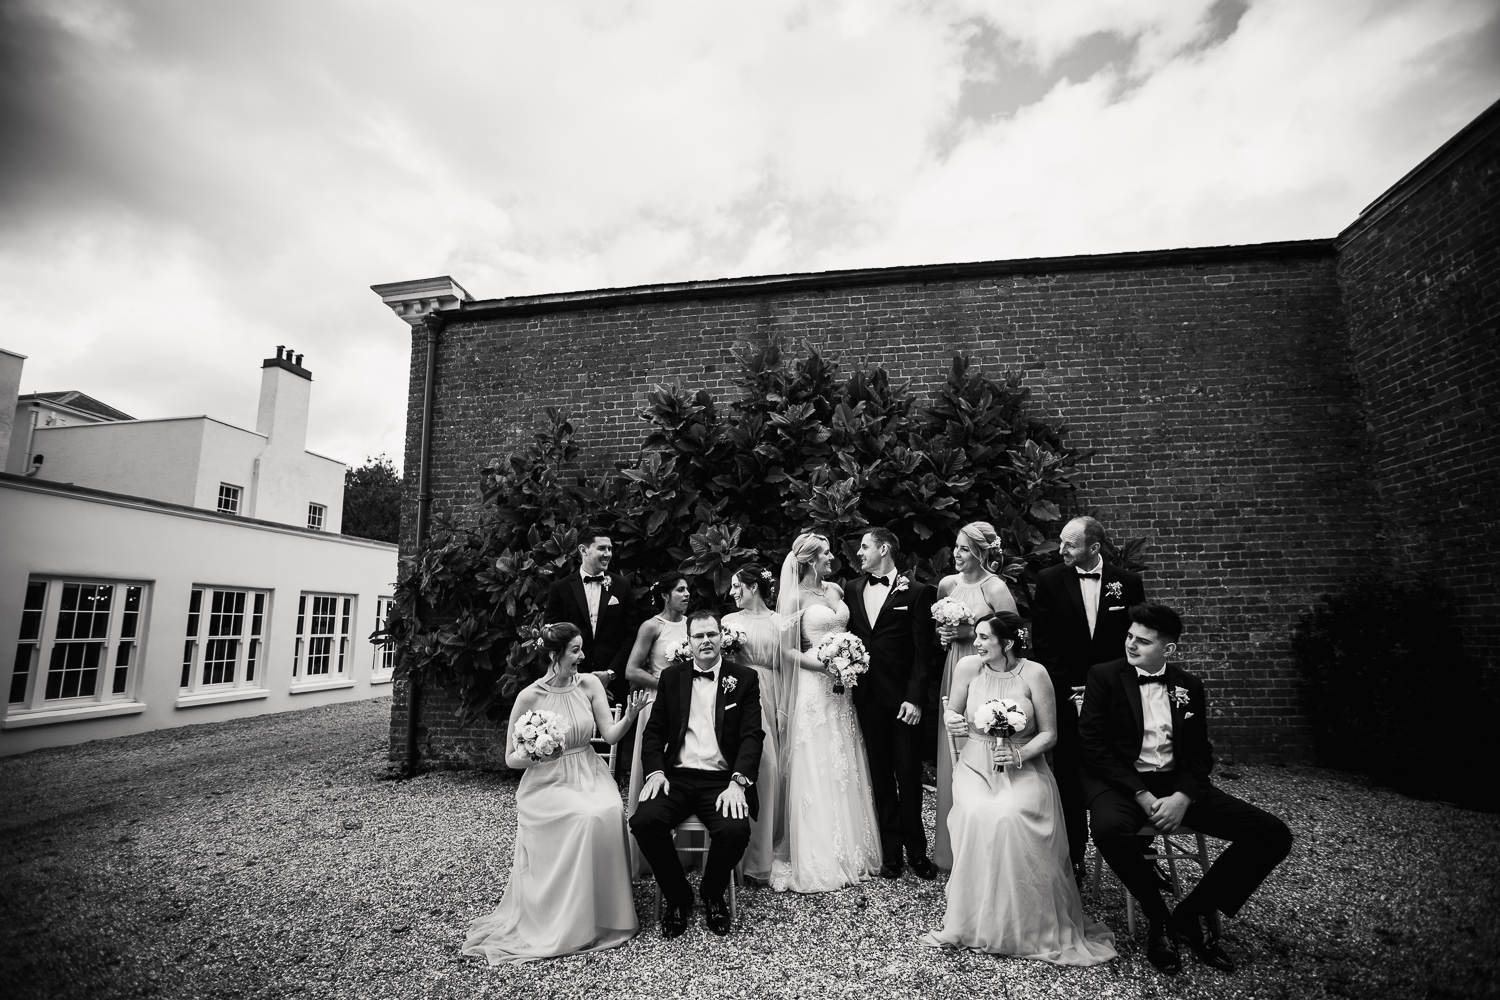 NATURAL_WEDDING_PHOTOGRAPHY_KATHRYN_CALRKE_MCLEOD-63.jpg